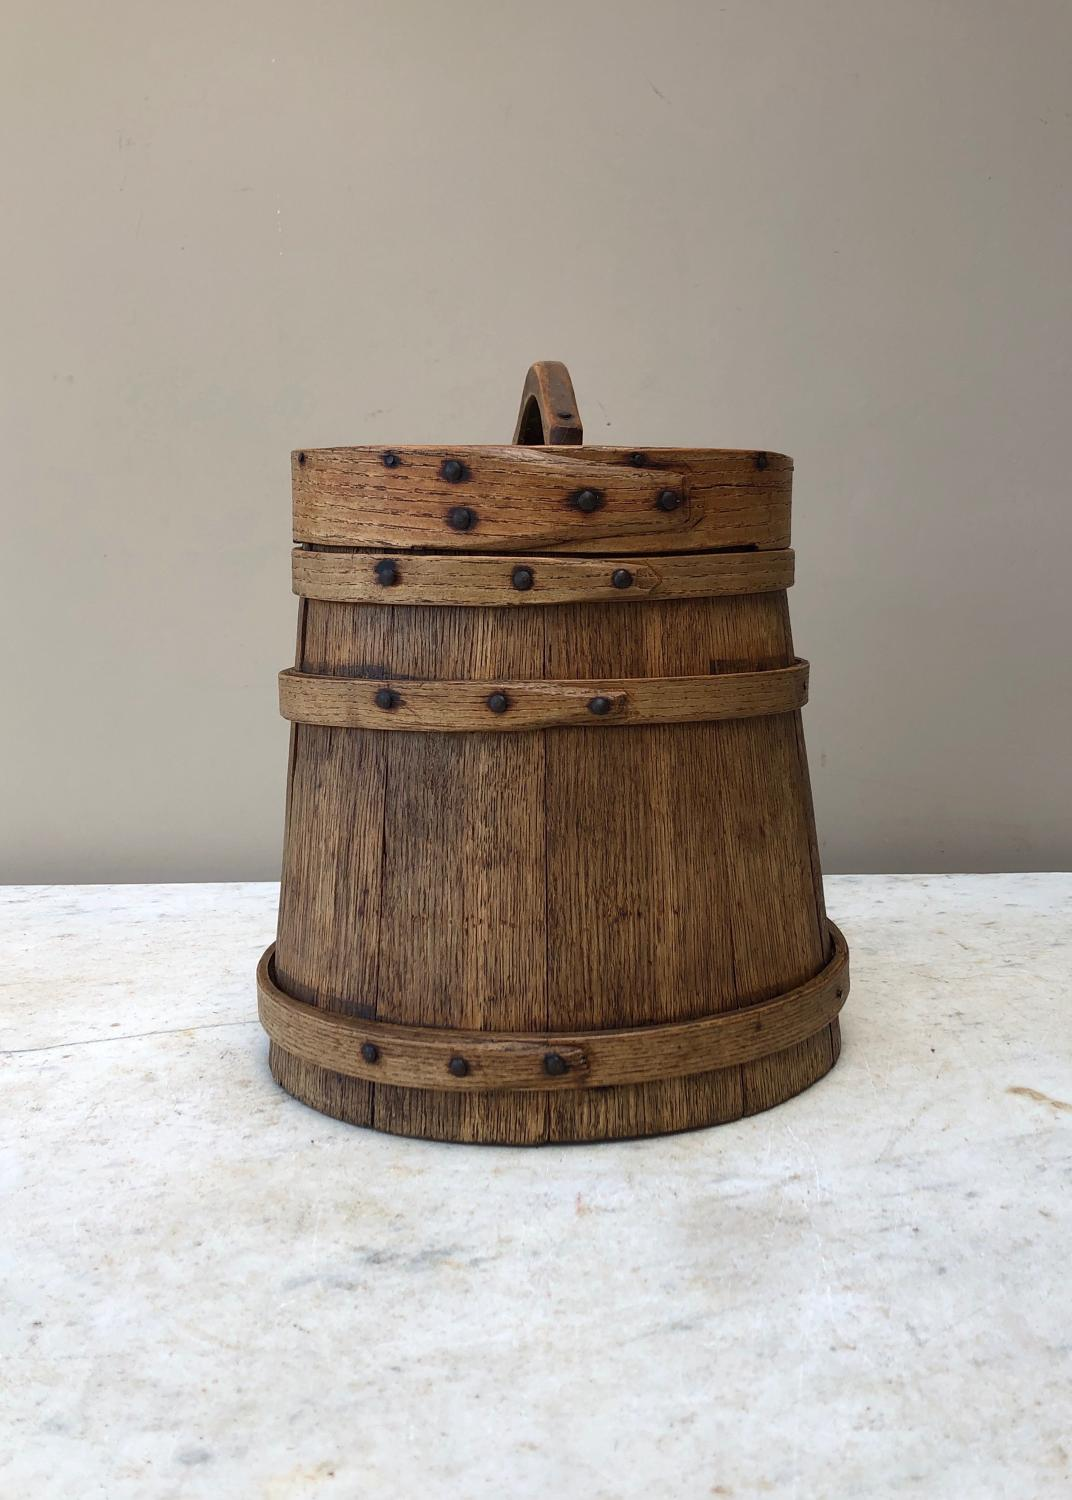 Late Victorian Coopered Oak Flour Barrel with Original Lid